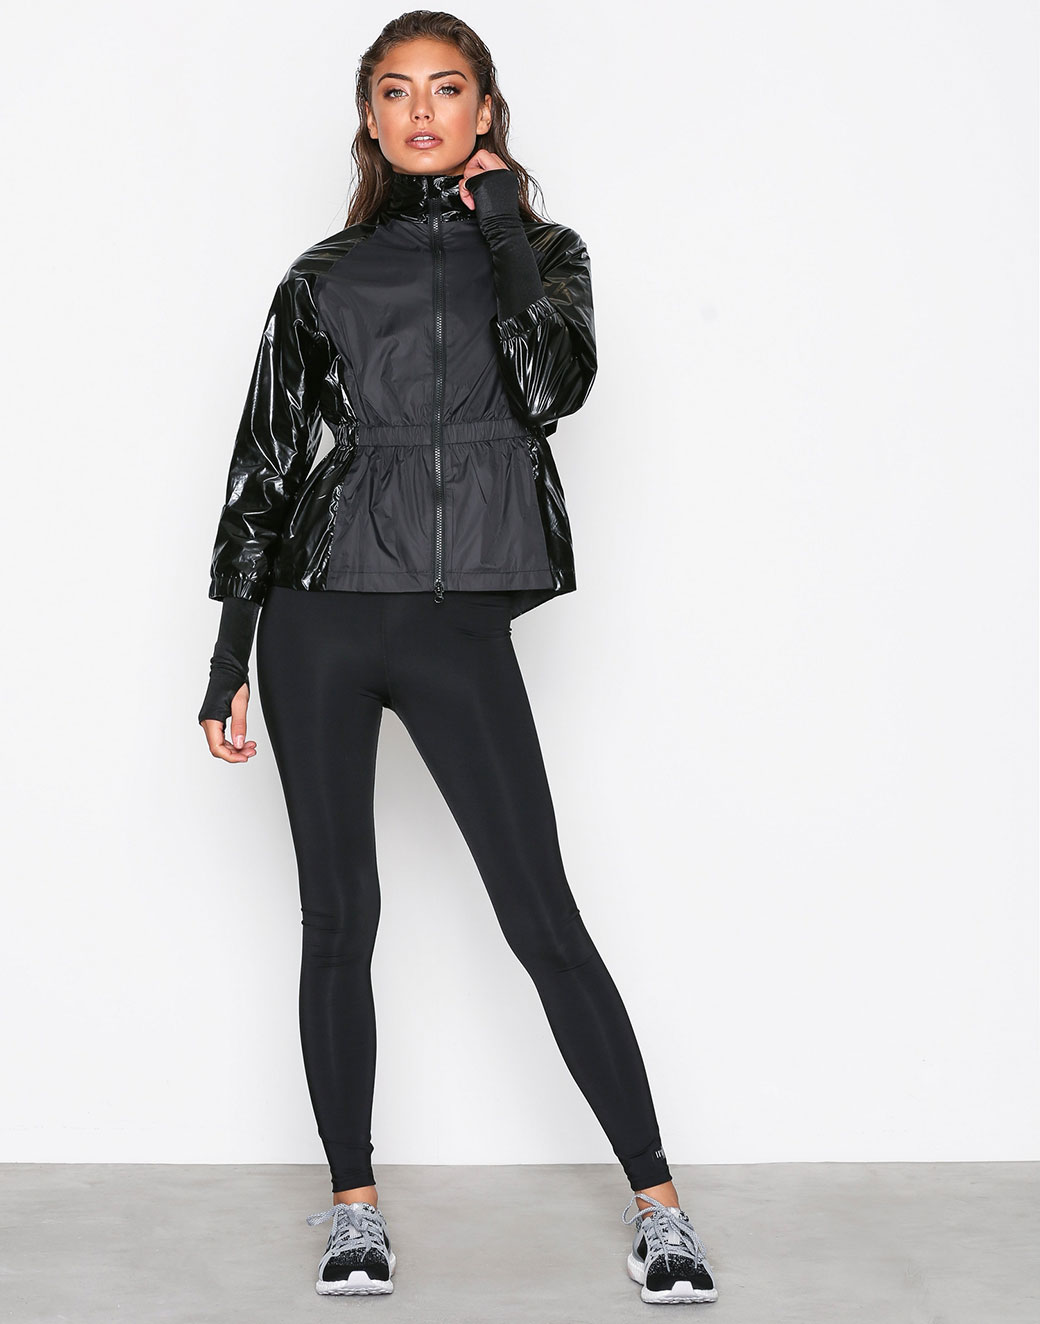 Fashionablefit Jacket 4